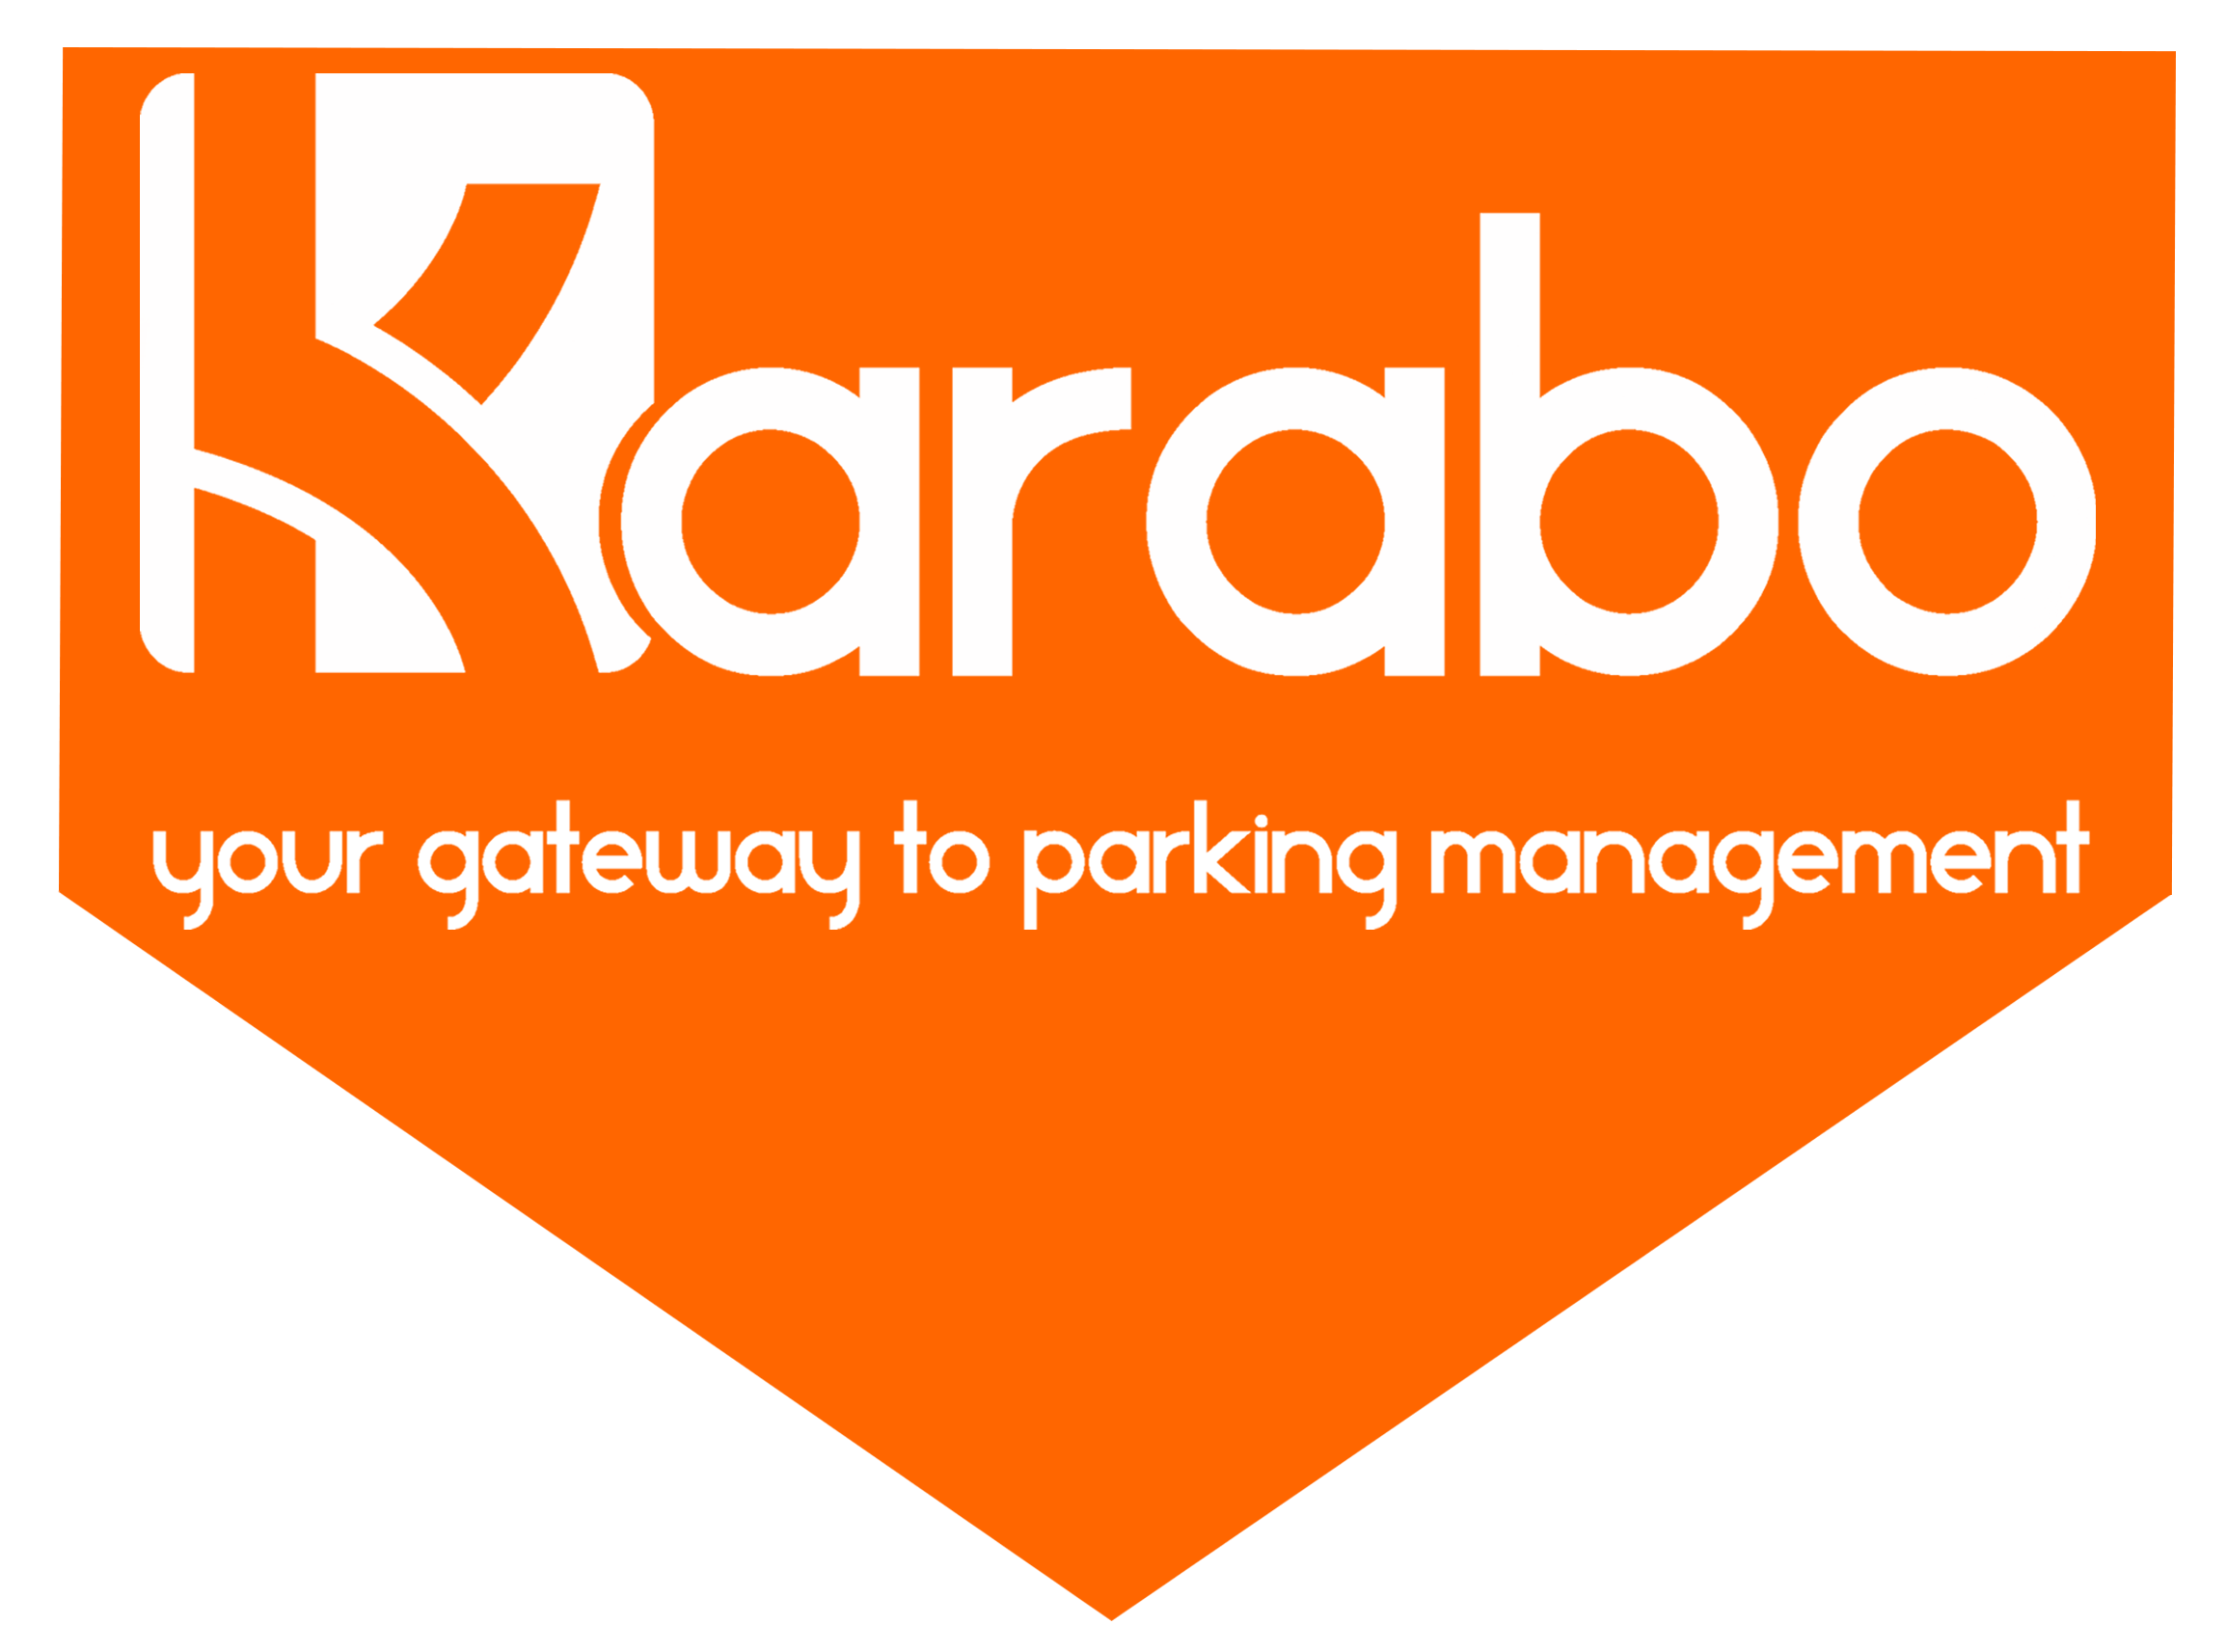 Karabo Parking Management